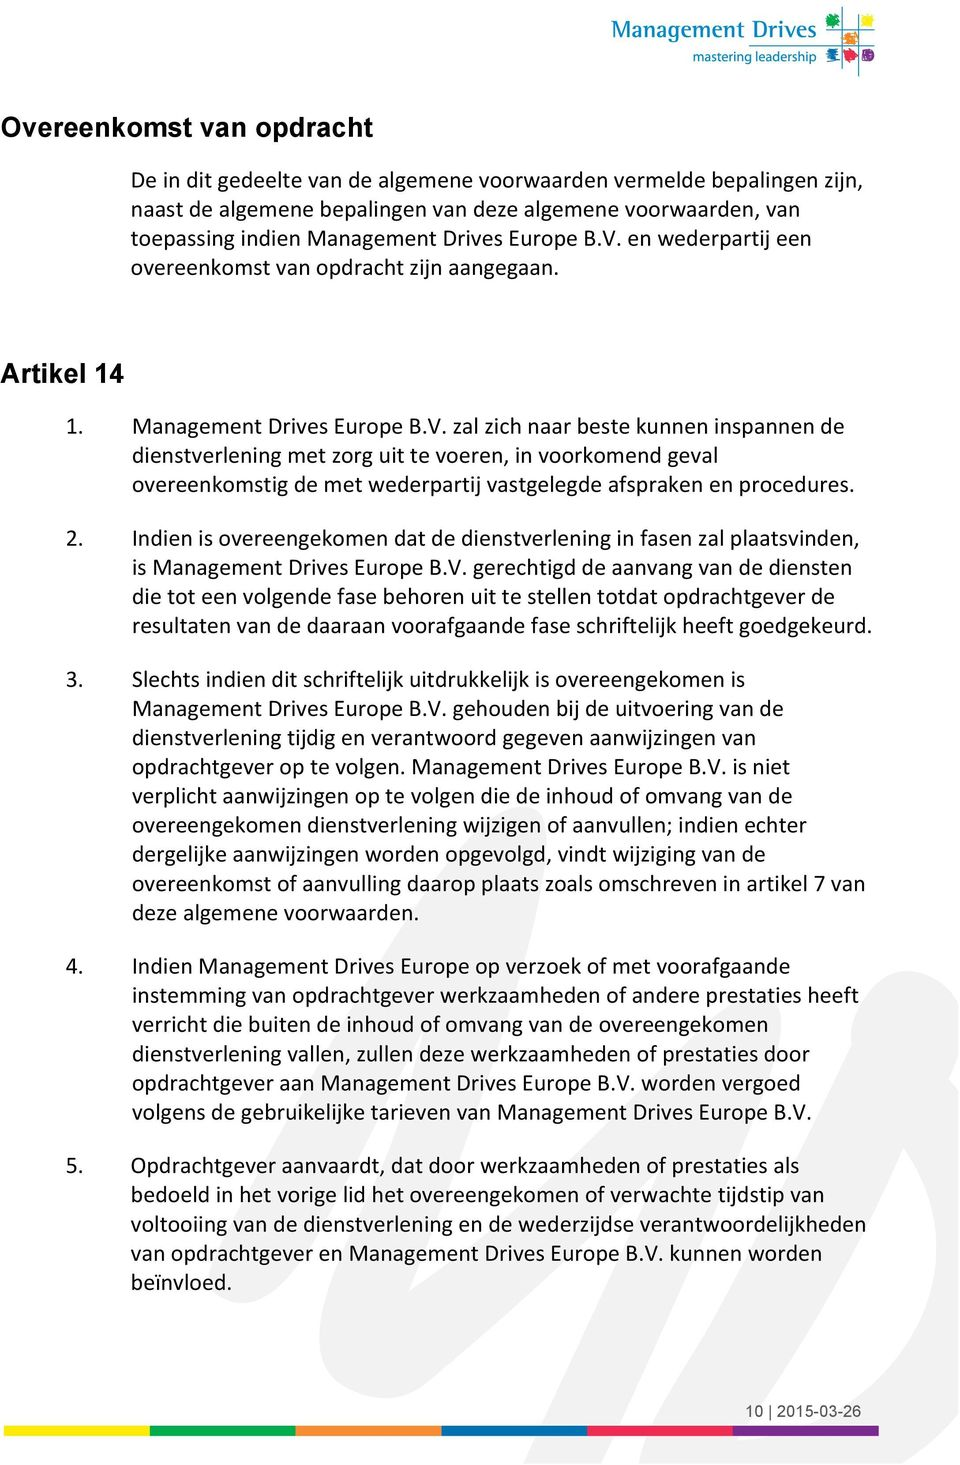 2. Indien is overeengekomen dat de dienstverlening in fasen zal plaatsvinden, is Management Drives Europe B.V.